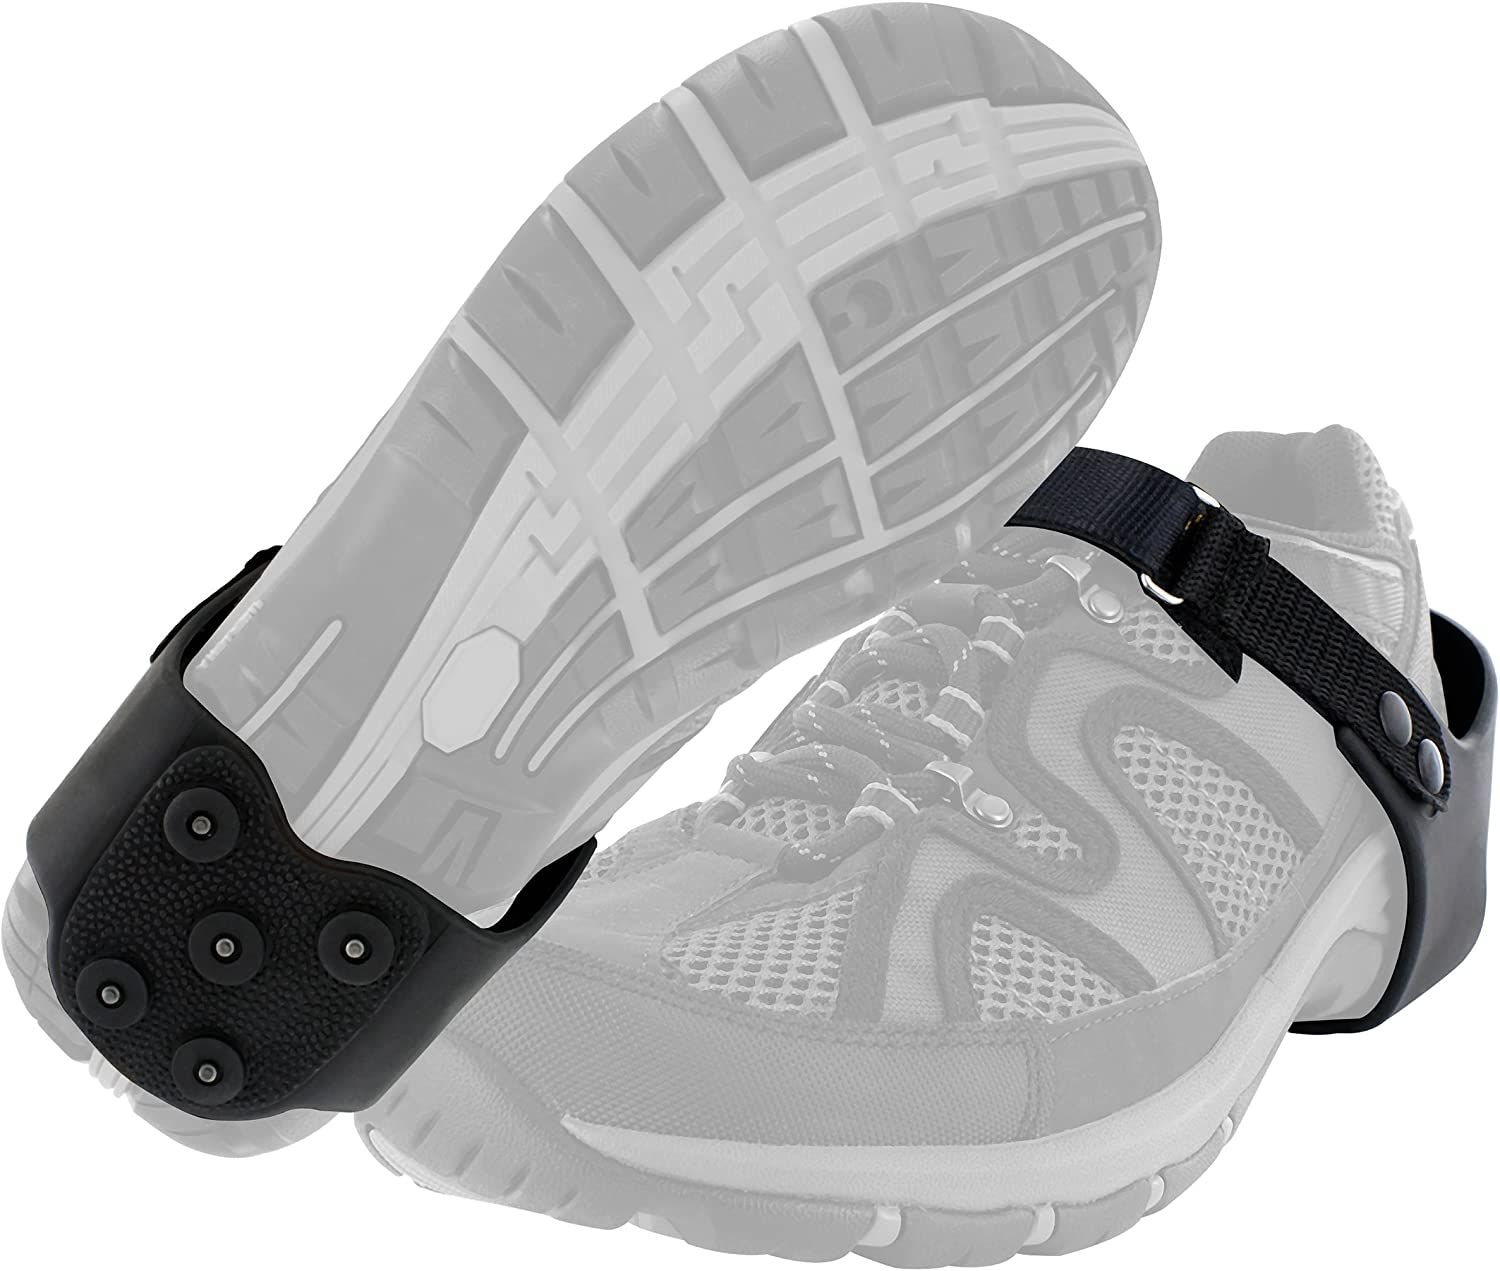 Yaktrax Heeltrax Heel-Only Traction Cleats for Walking on Ice and Snow (1 Pair)